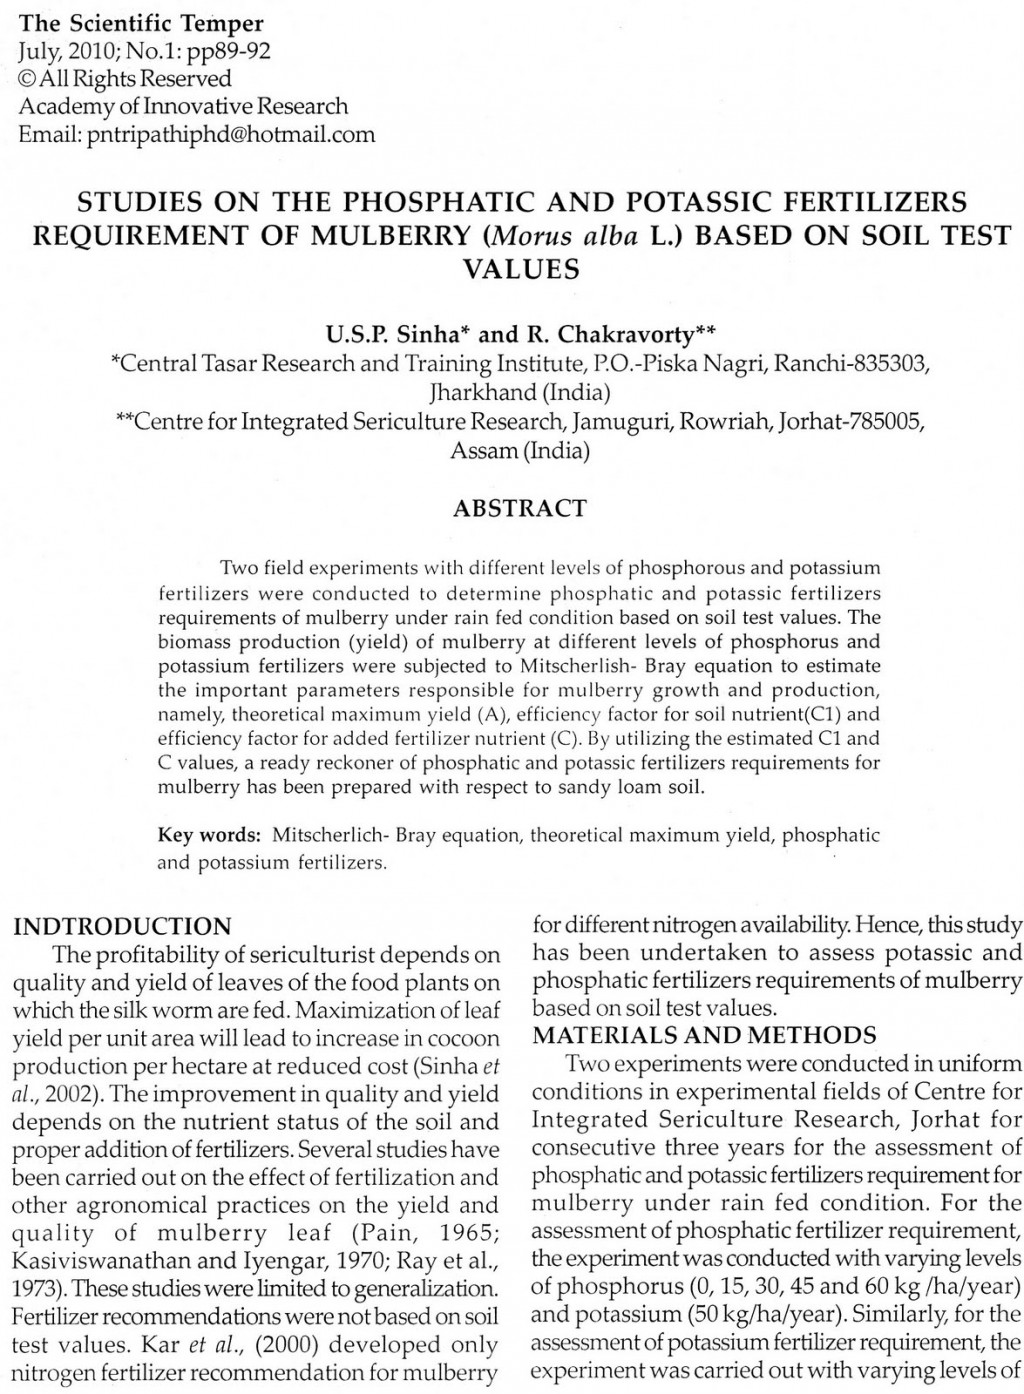 007 Sinha2band2bchakravorty253b89 Format For Science Research Awesome Paper Sample Political Mla Scientific Large